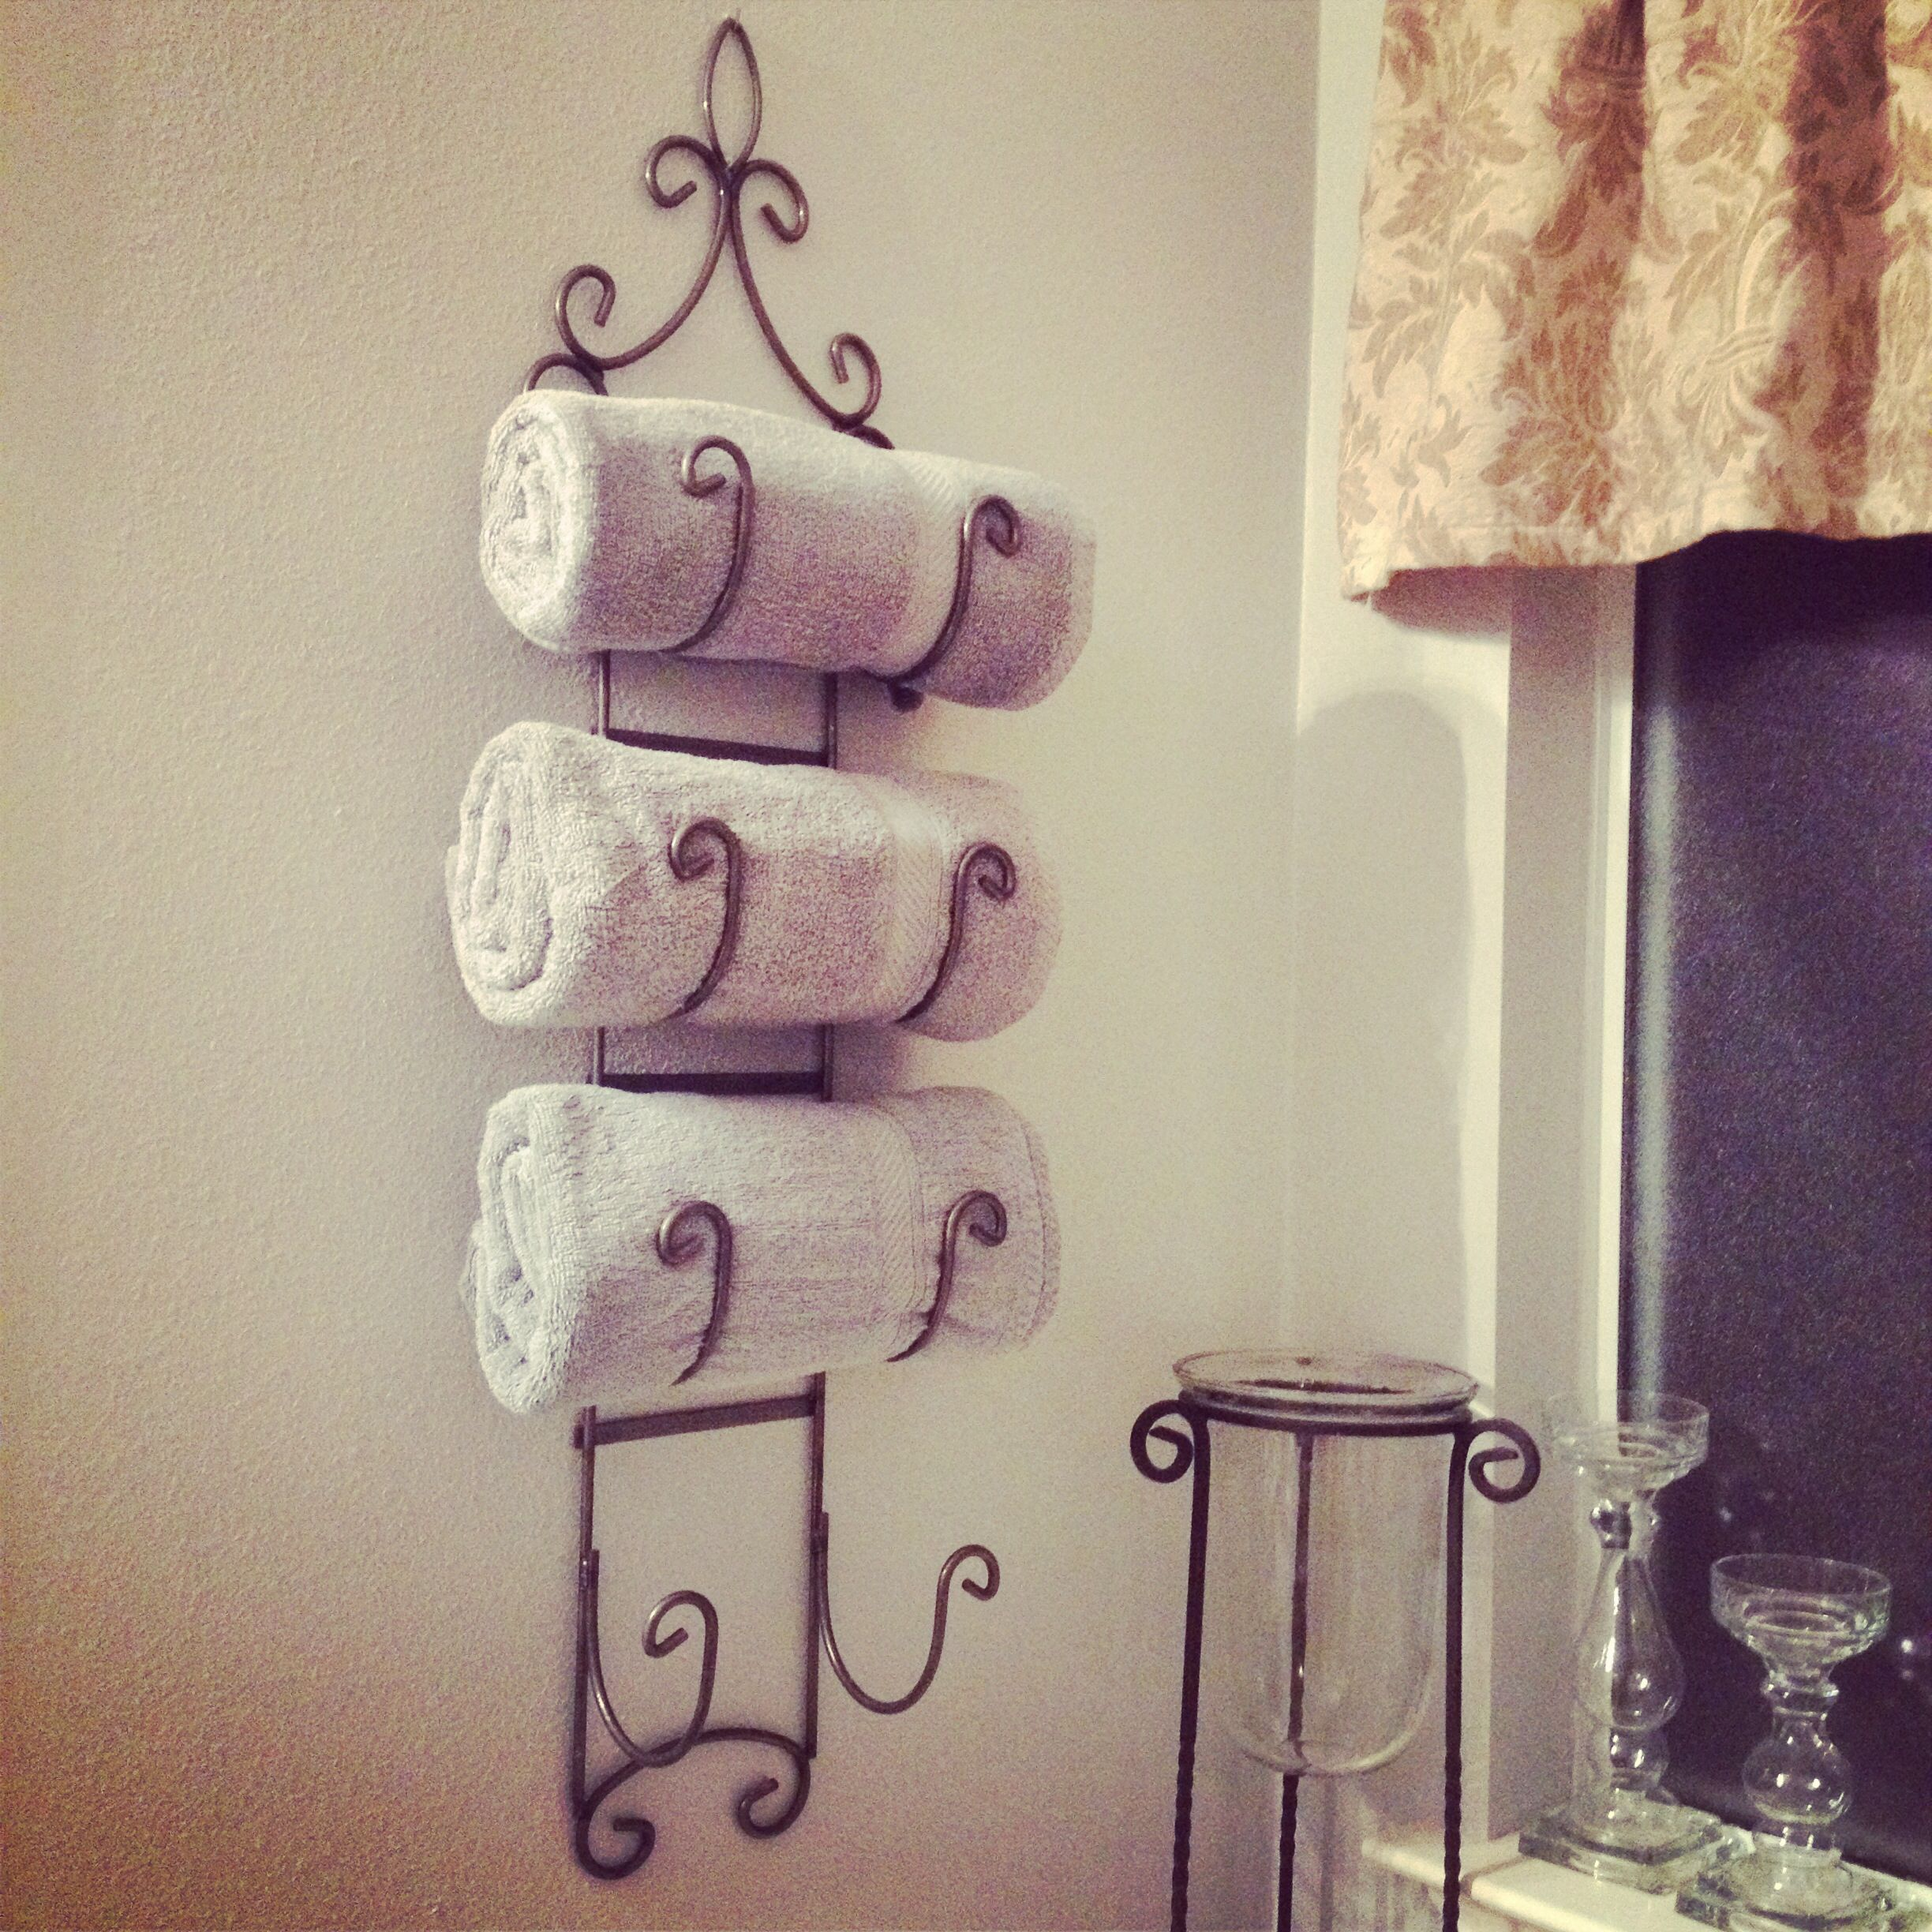 Wine rack towel holder - I have this exact rack in my ...